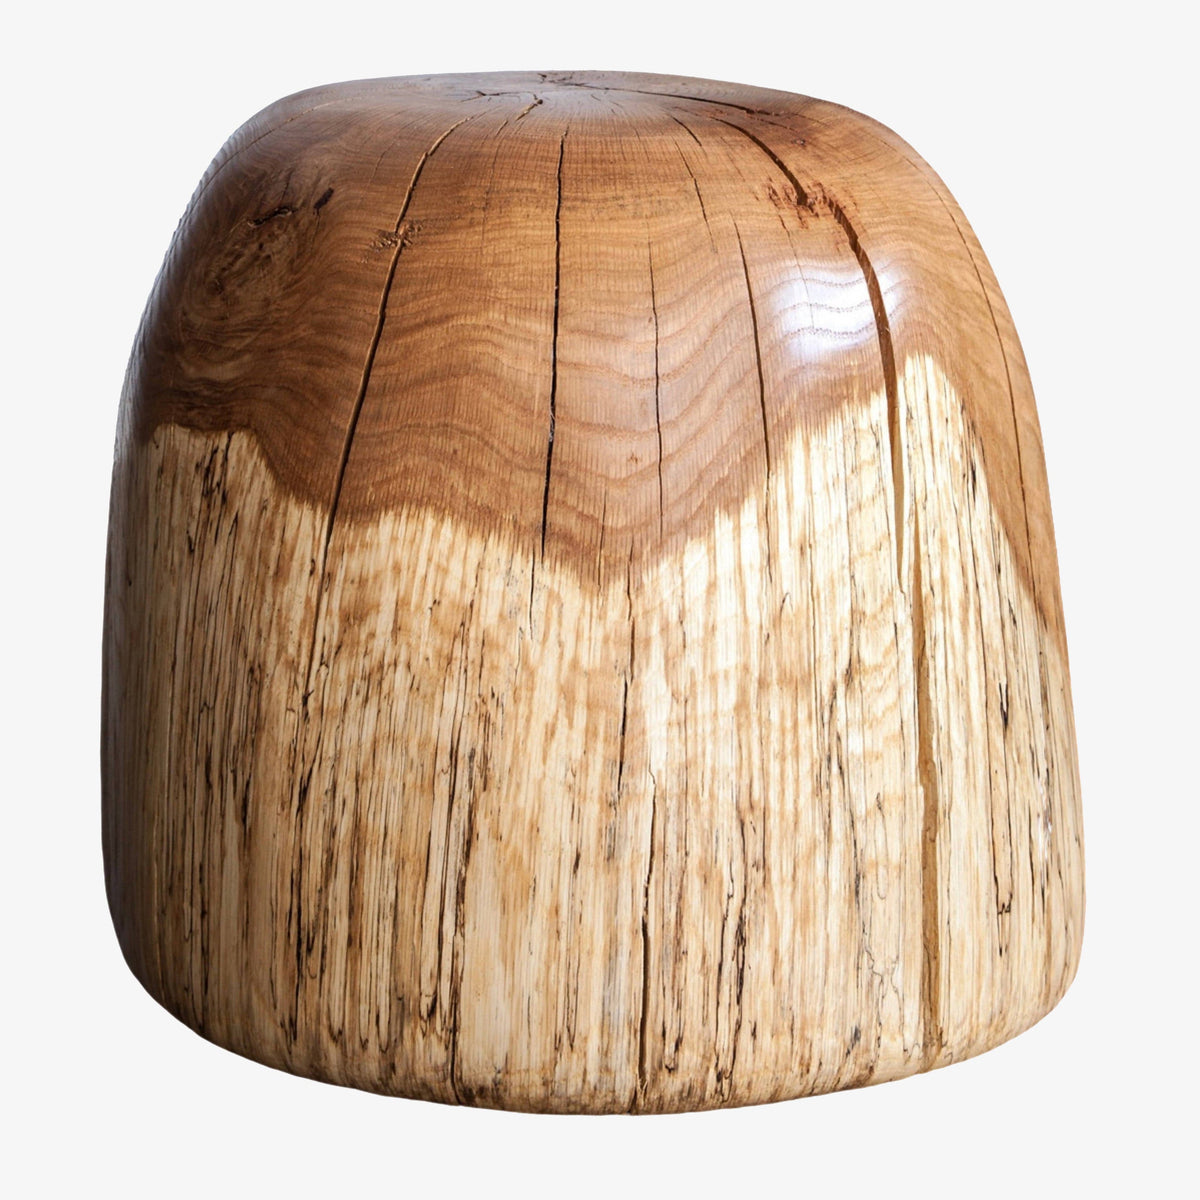 Spalted Oak Stool Rounded Top